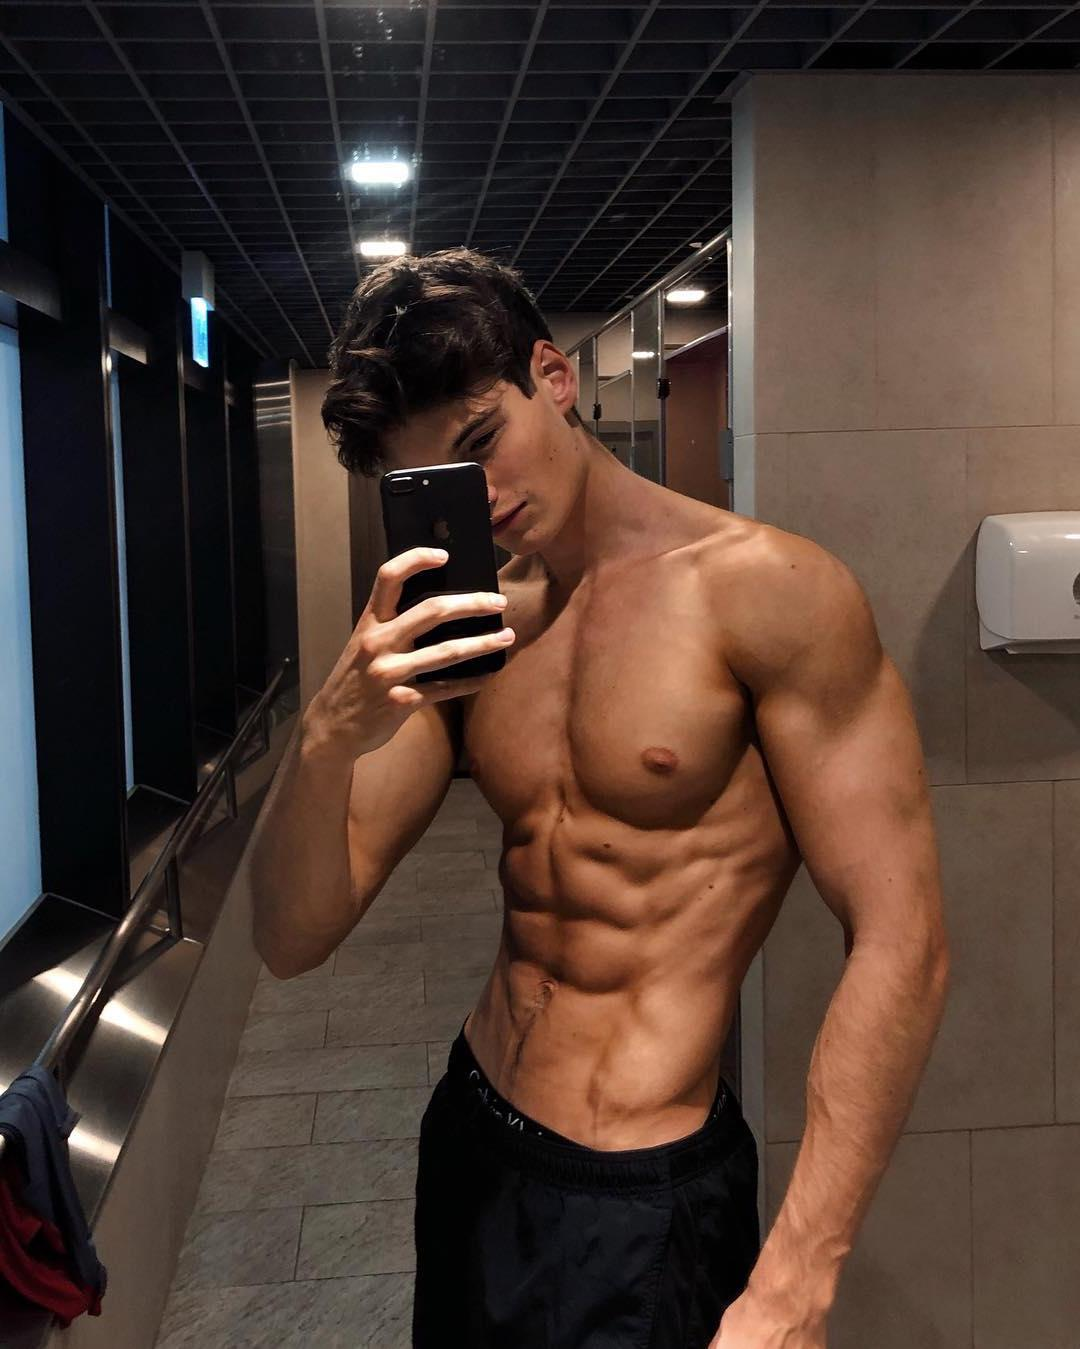 young-cute-dude-fit-body-barechest-ripped-abs-pecs-slim-boy-selfie